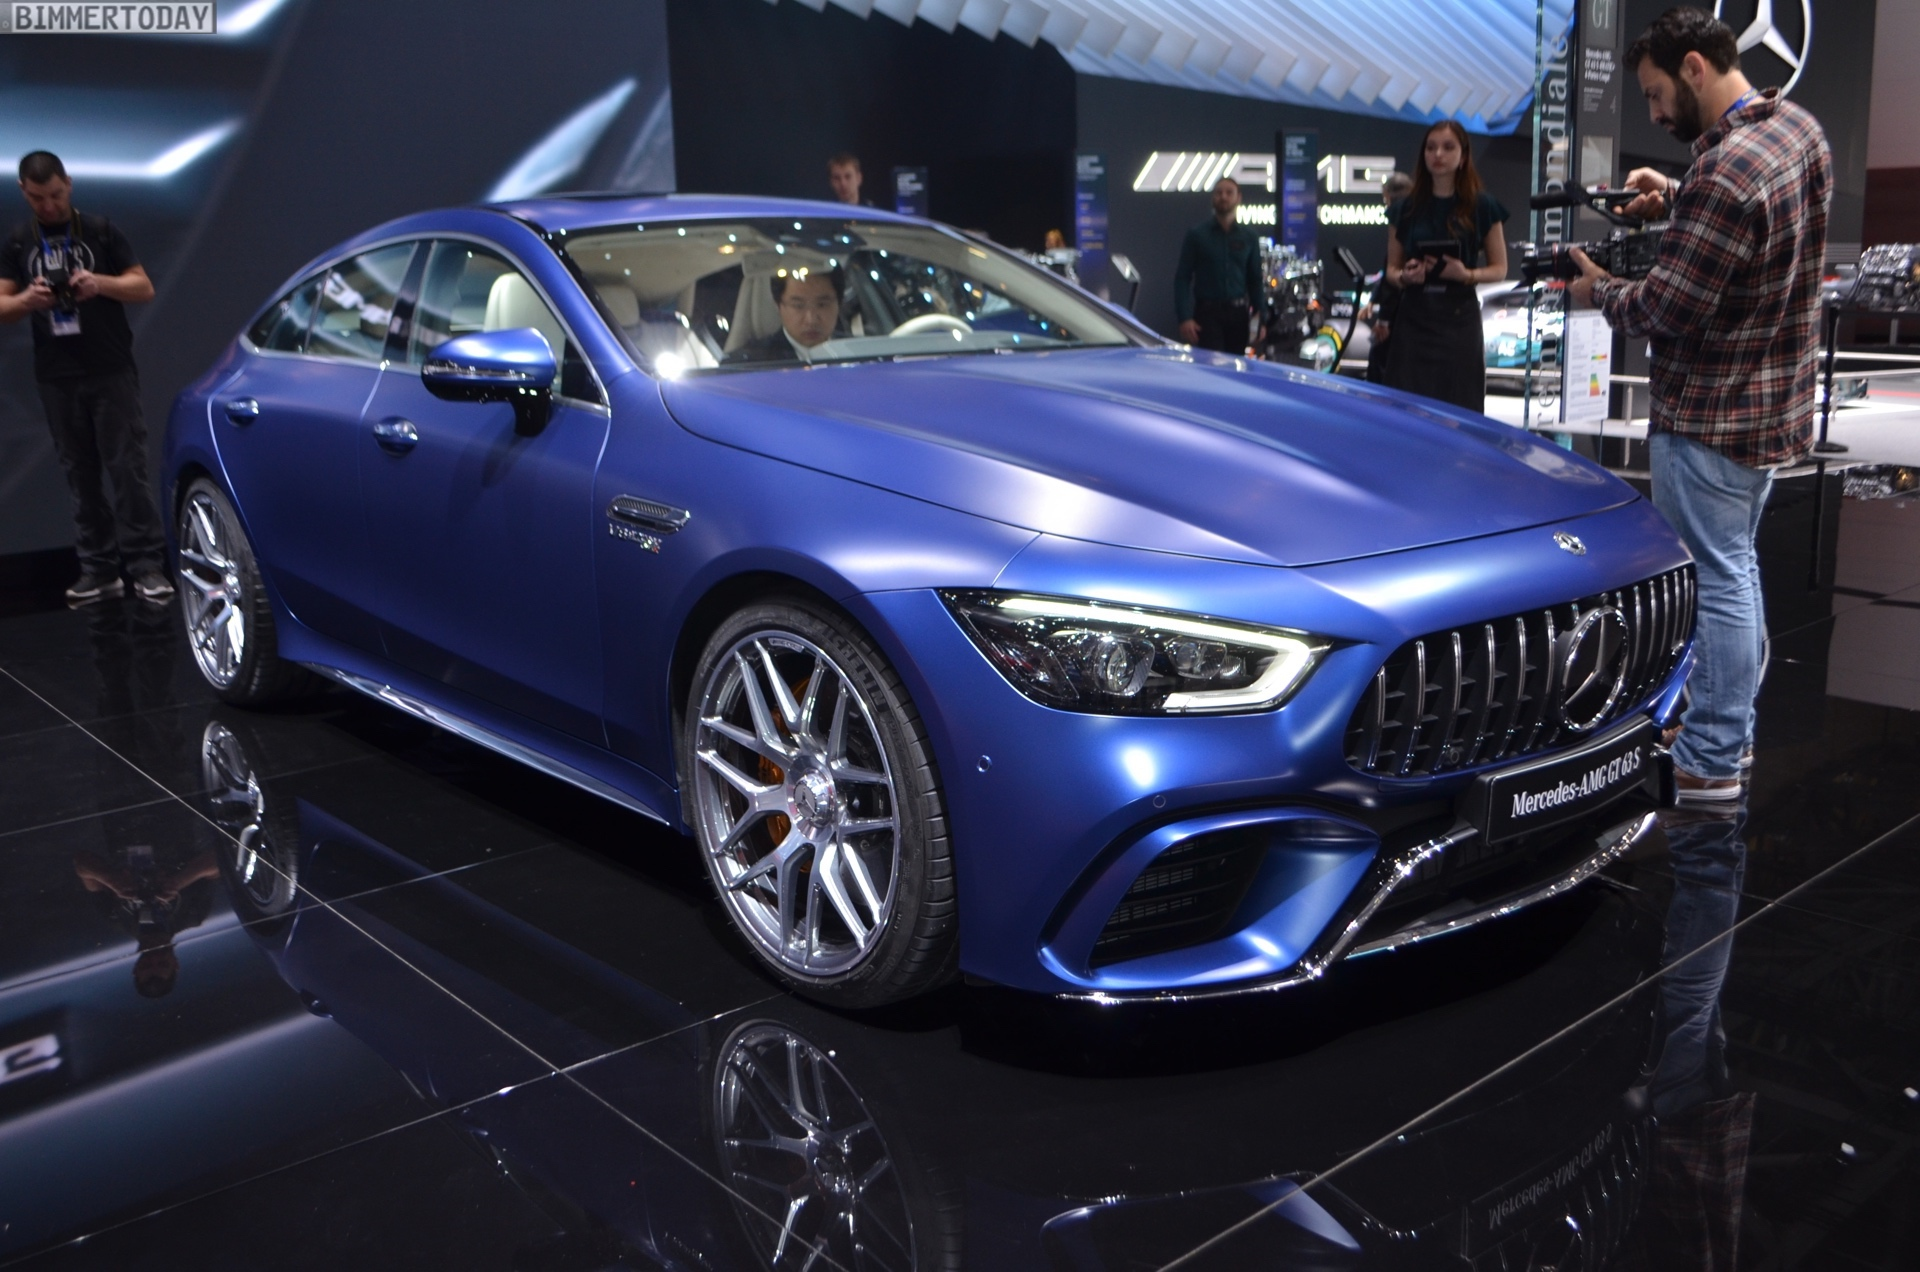 2018 Geneva Motor Show Live Photos Mercedes Amg Gt 4 Door Coupe X290